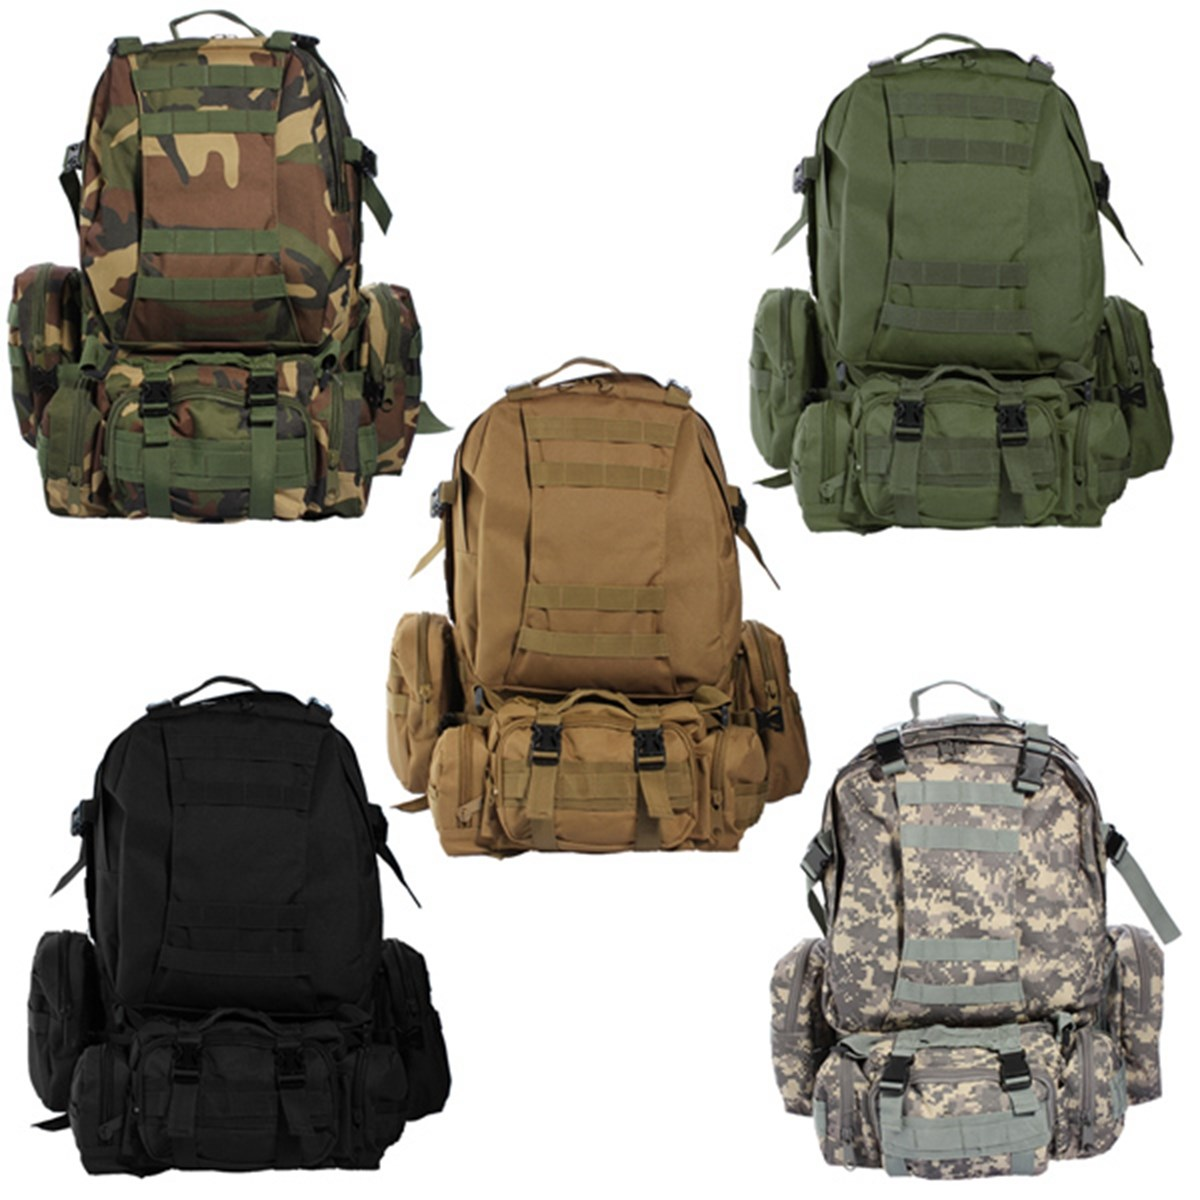 50L Military Tactical Backpack Waterproof 600D Nylon Rucksacks Outdoor Travel camping Hiking Sport Military Backpacks bags 50l tactical backpacks fly fishing outdoor camping hiking backpack 600d nylon military bags large capacity travel bag for men